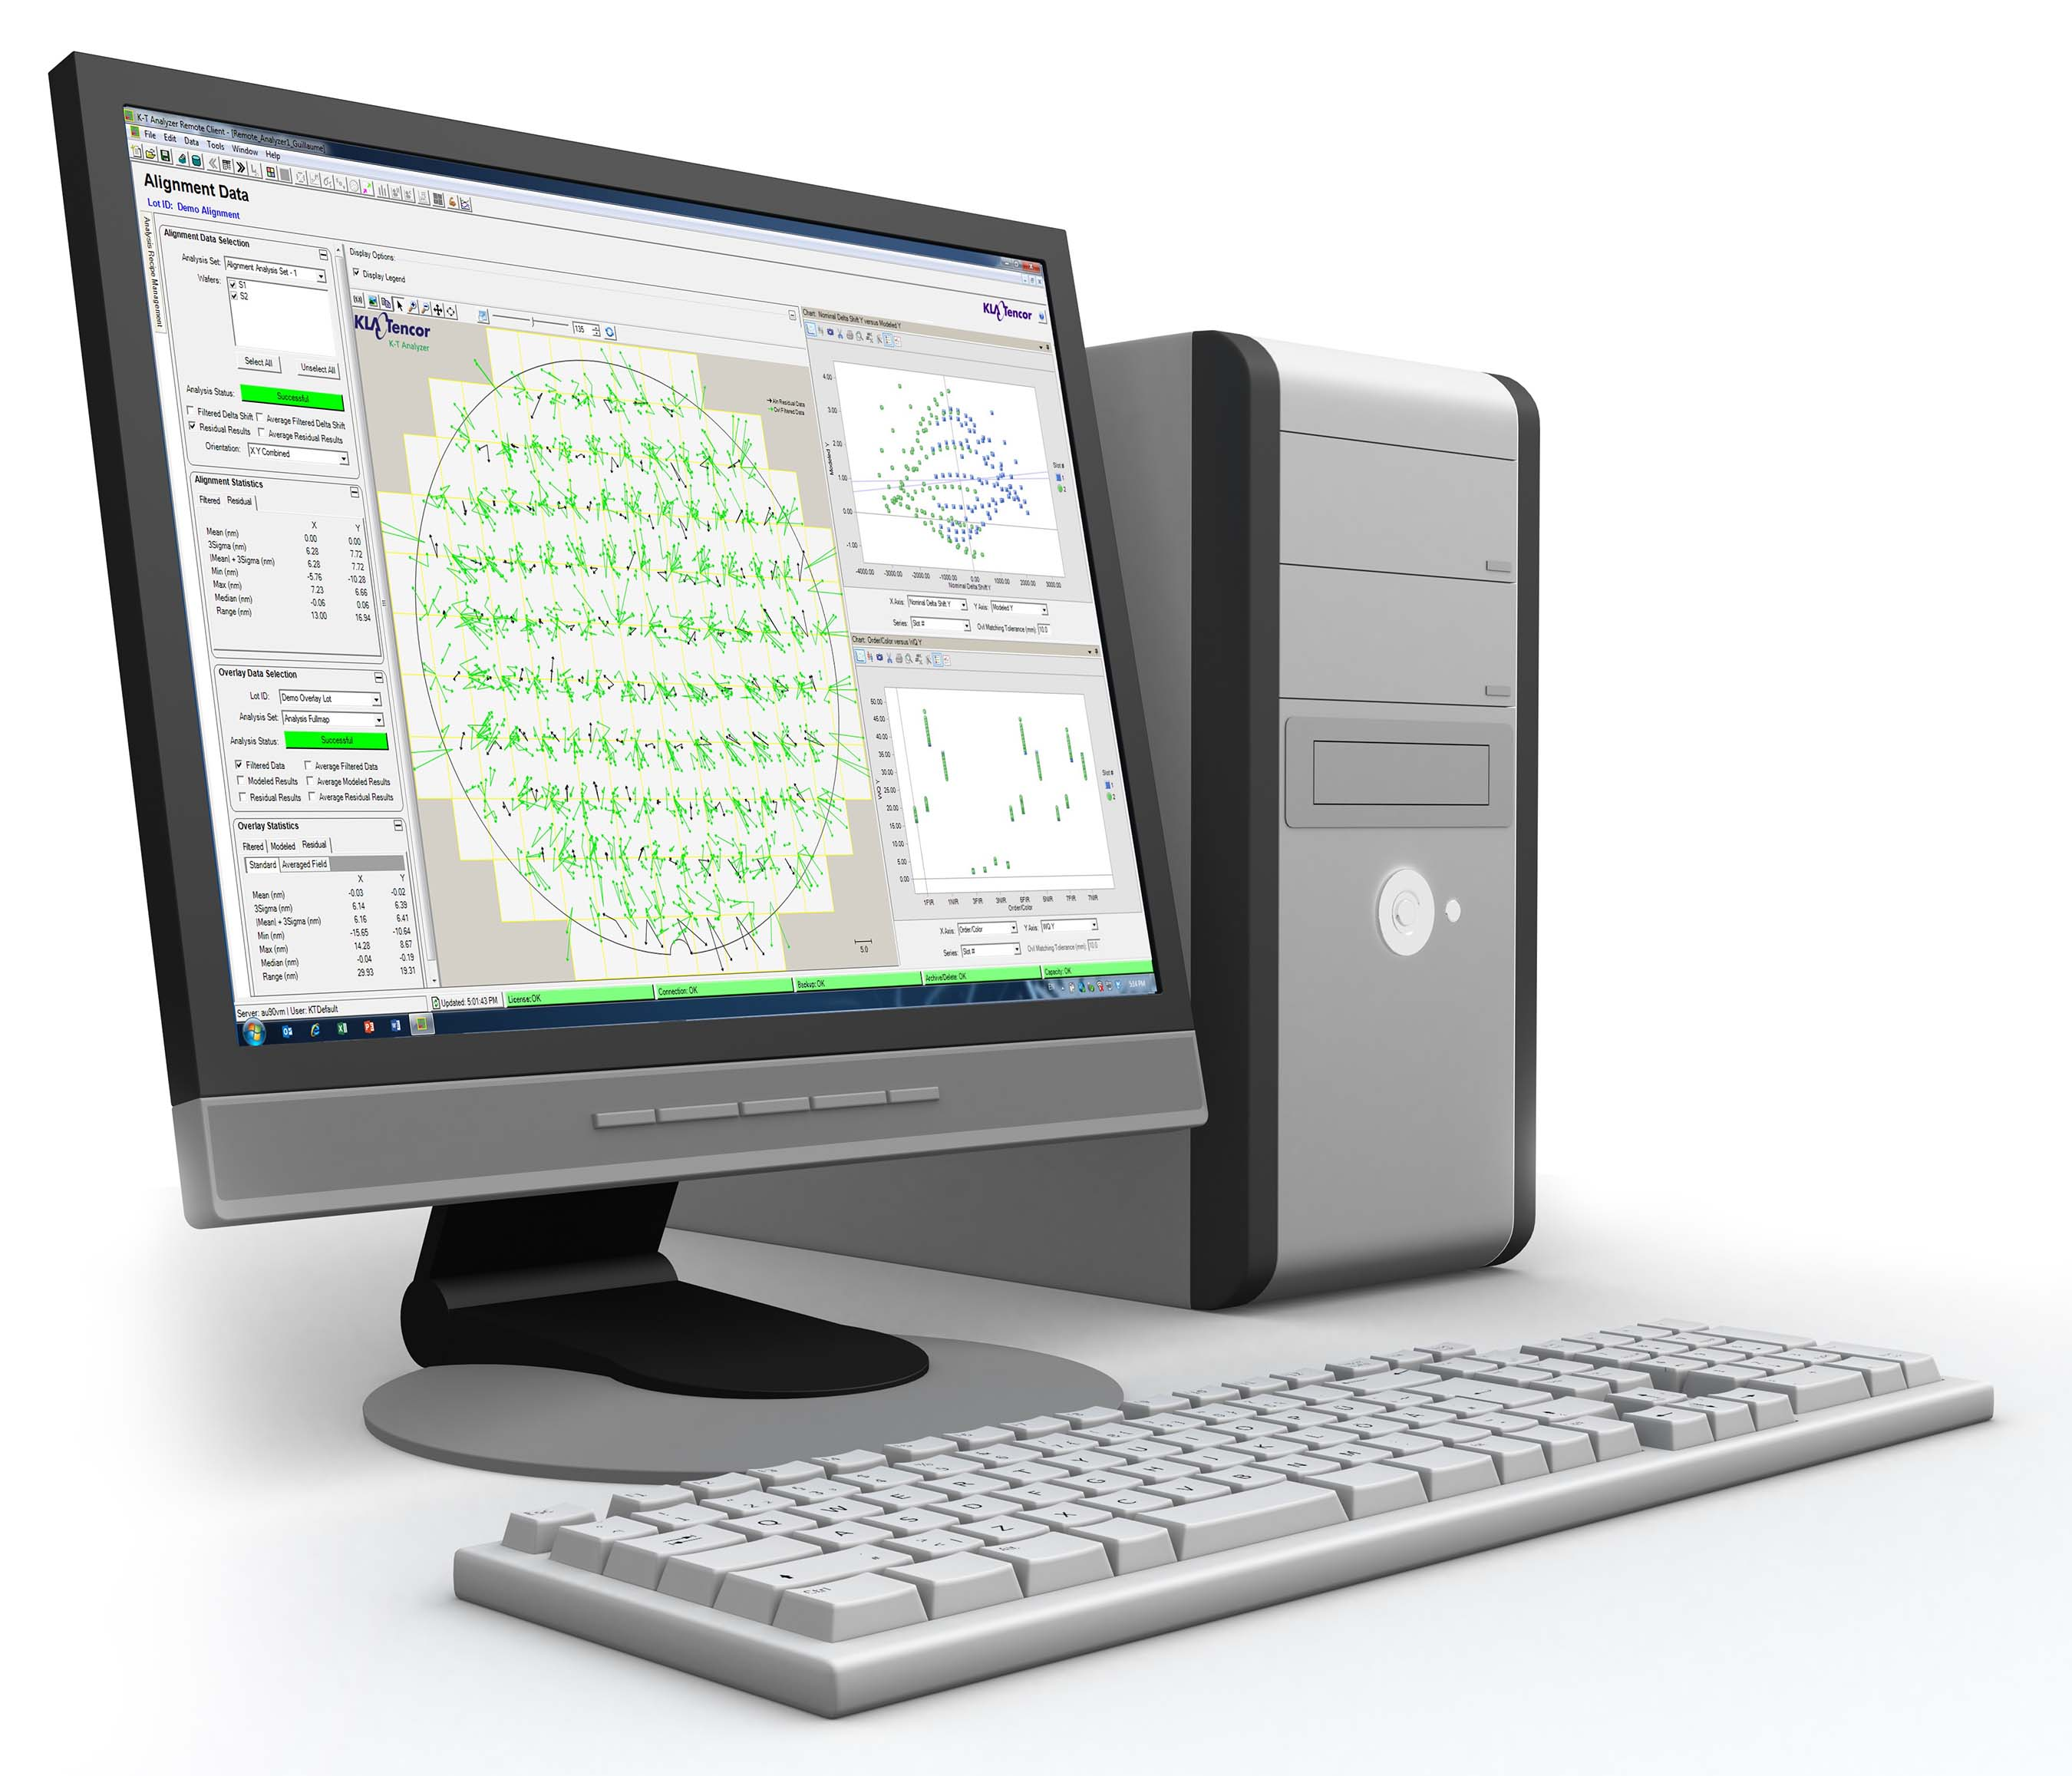 K-T Analyzer(R) 9.0 from KLA-Tencor offers a flexible solution for metrology data analysis and process corrections, enabling advanced IC patterning control